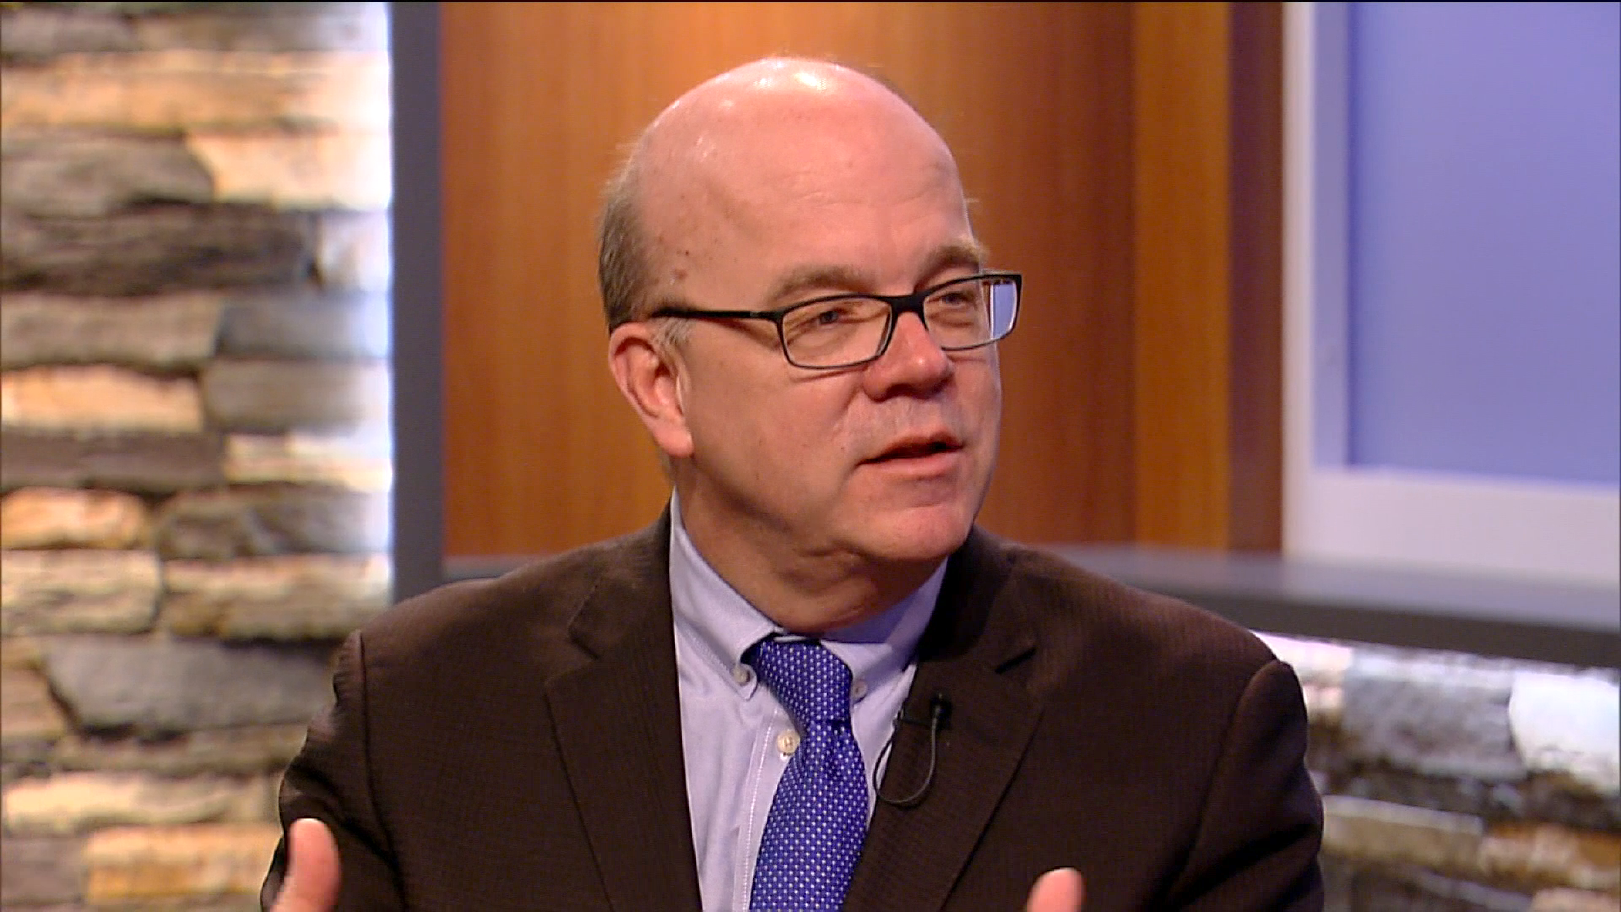 U.S. House Rules Chair Rep. Jim McGovern discusses chairing the powerful Rules Committee and what the appointment means for the people of western Mass.